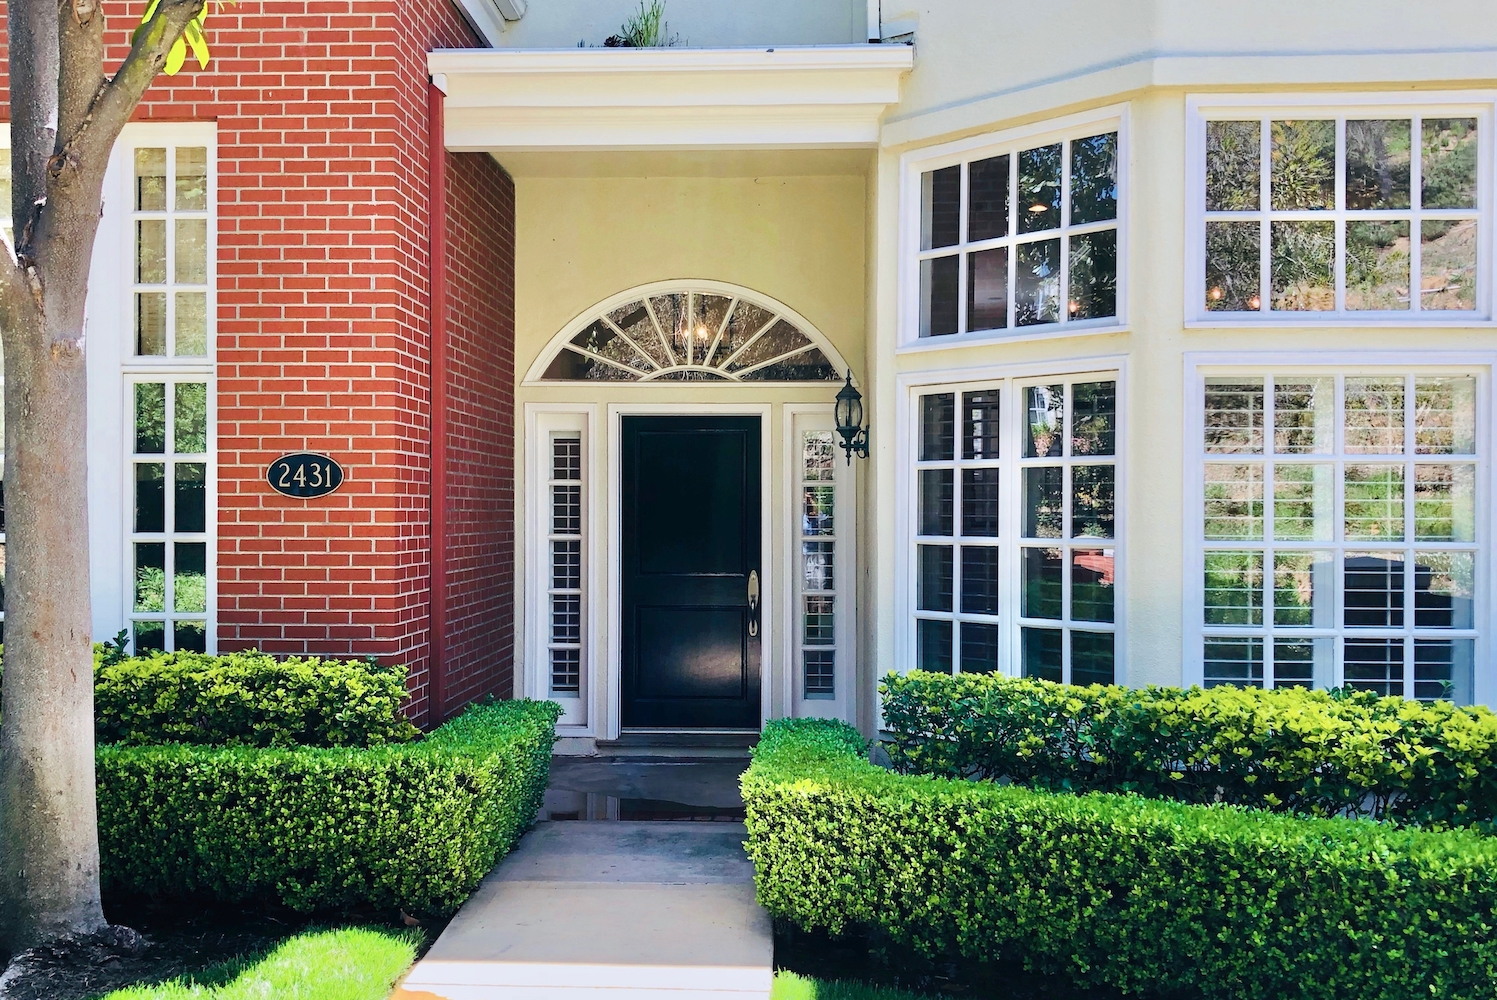 2431 Swanfield - For Sale